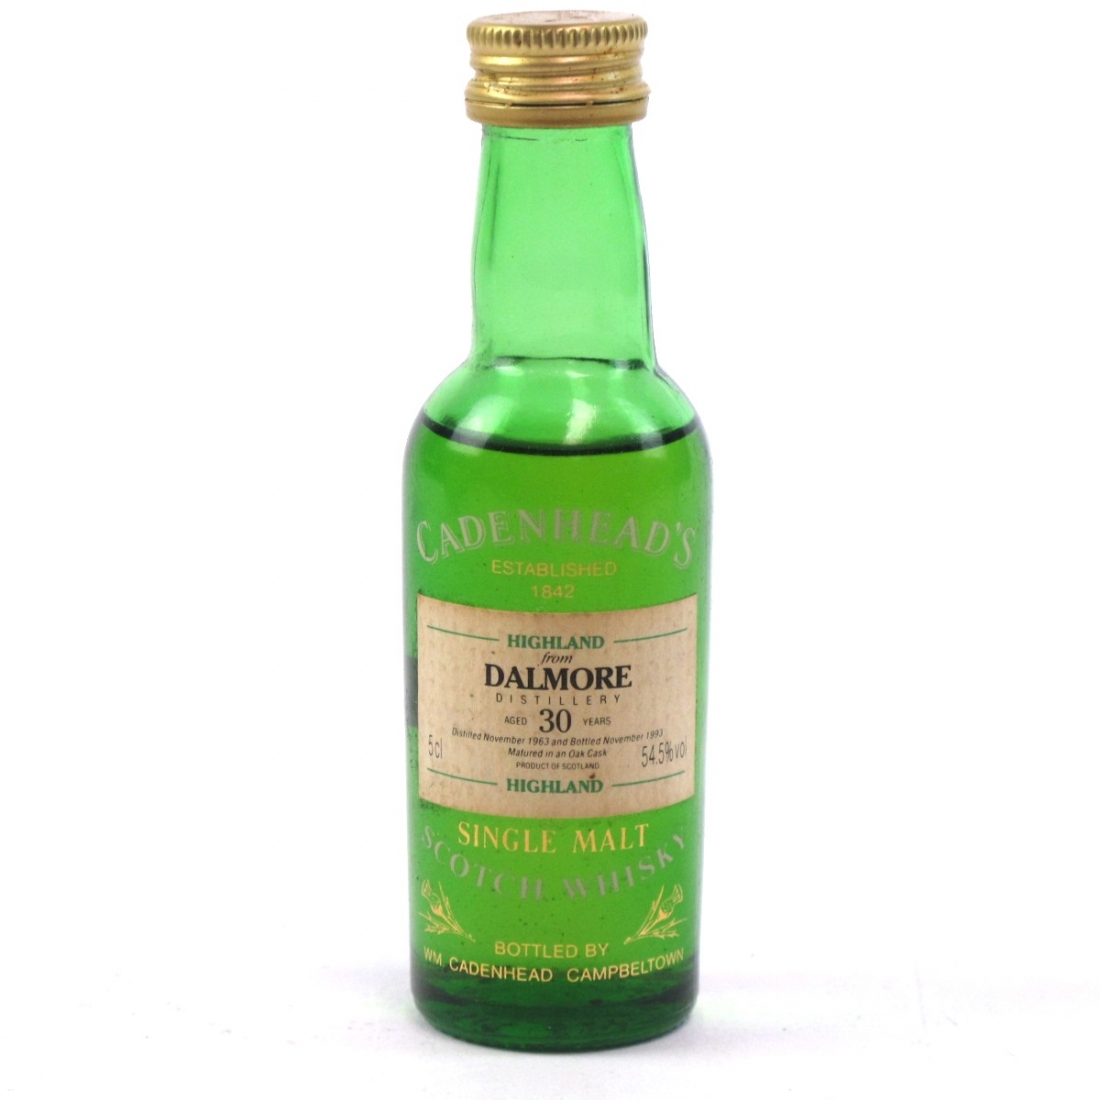 Dalmore 1963 Cadenhead's 30 Year Old 5cl